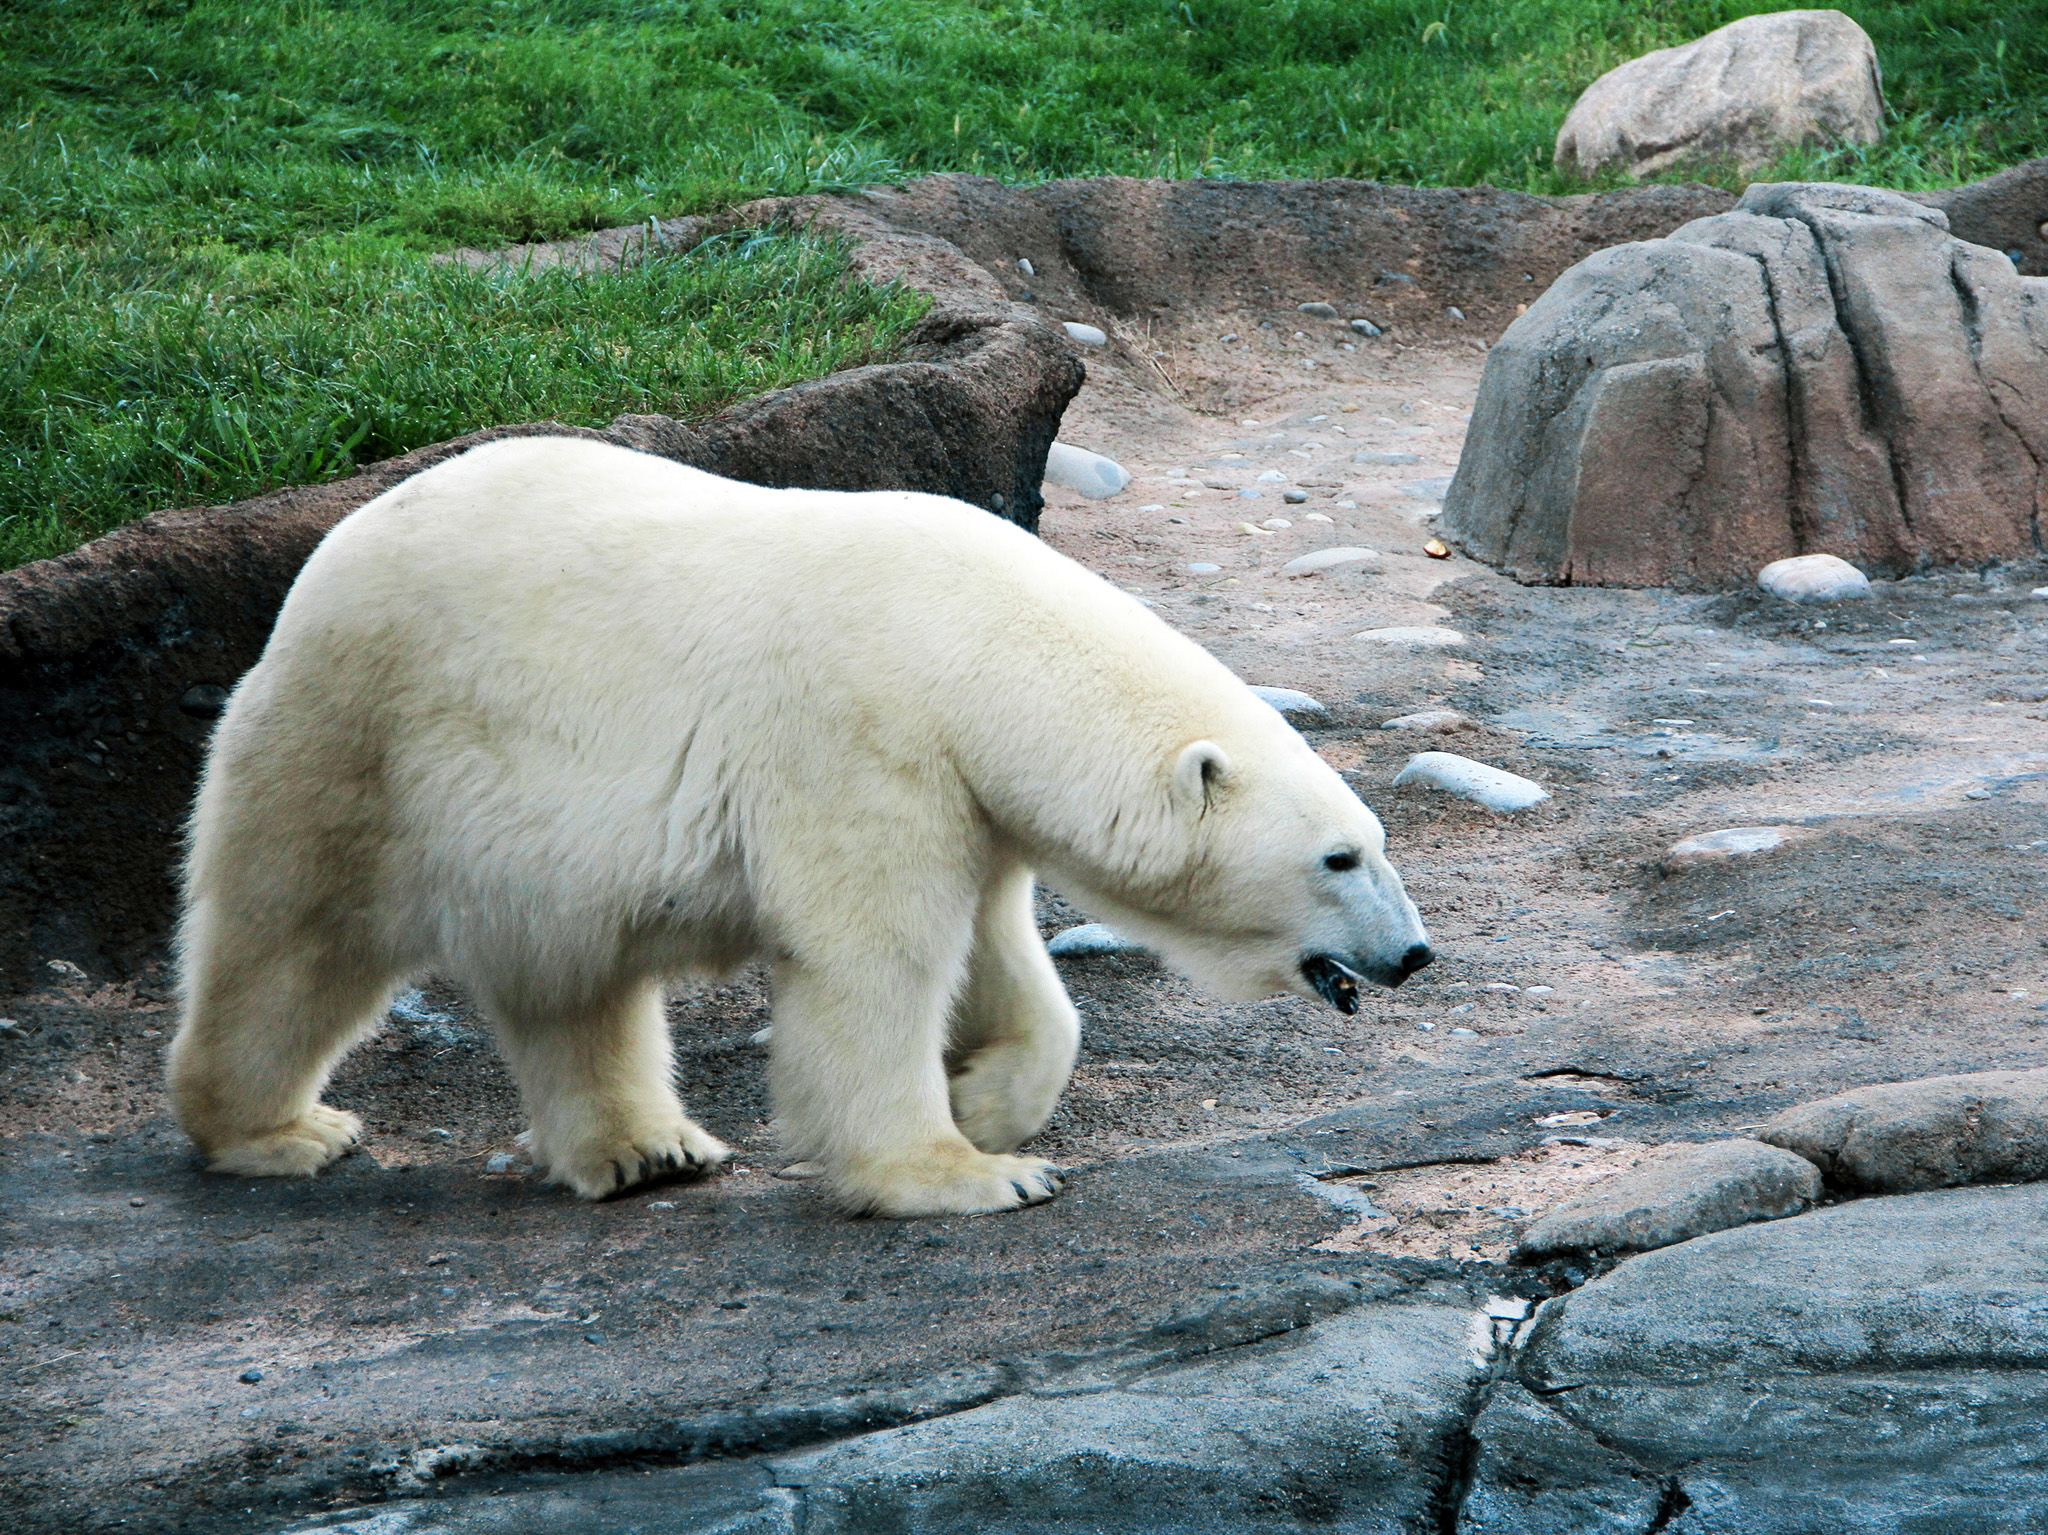 Aurora the polar bear roaming in her habitat. This image is from Secrets of the Zoo. [Photo of the day - August 2019]